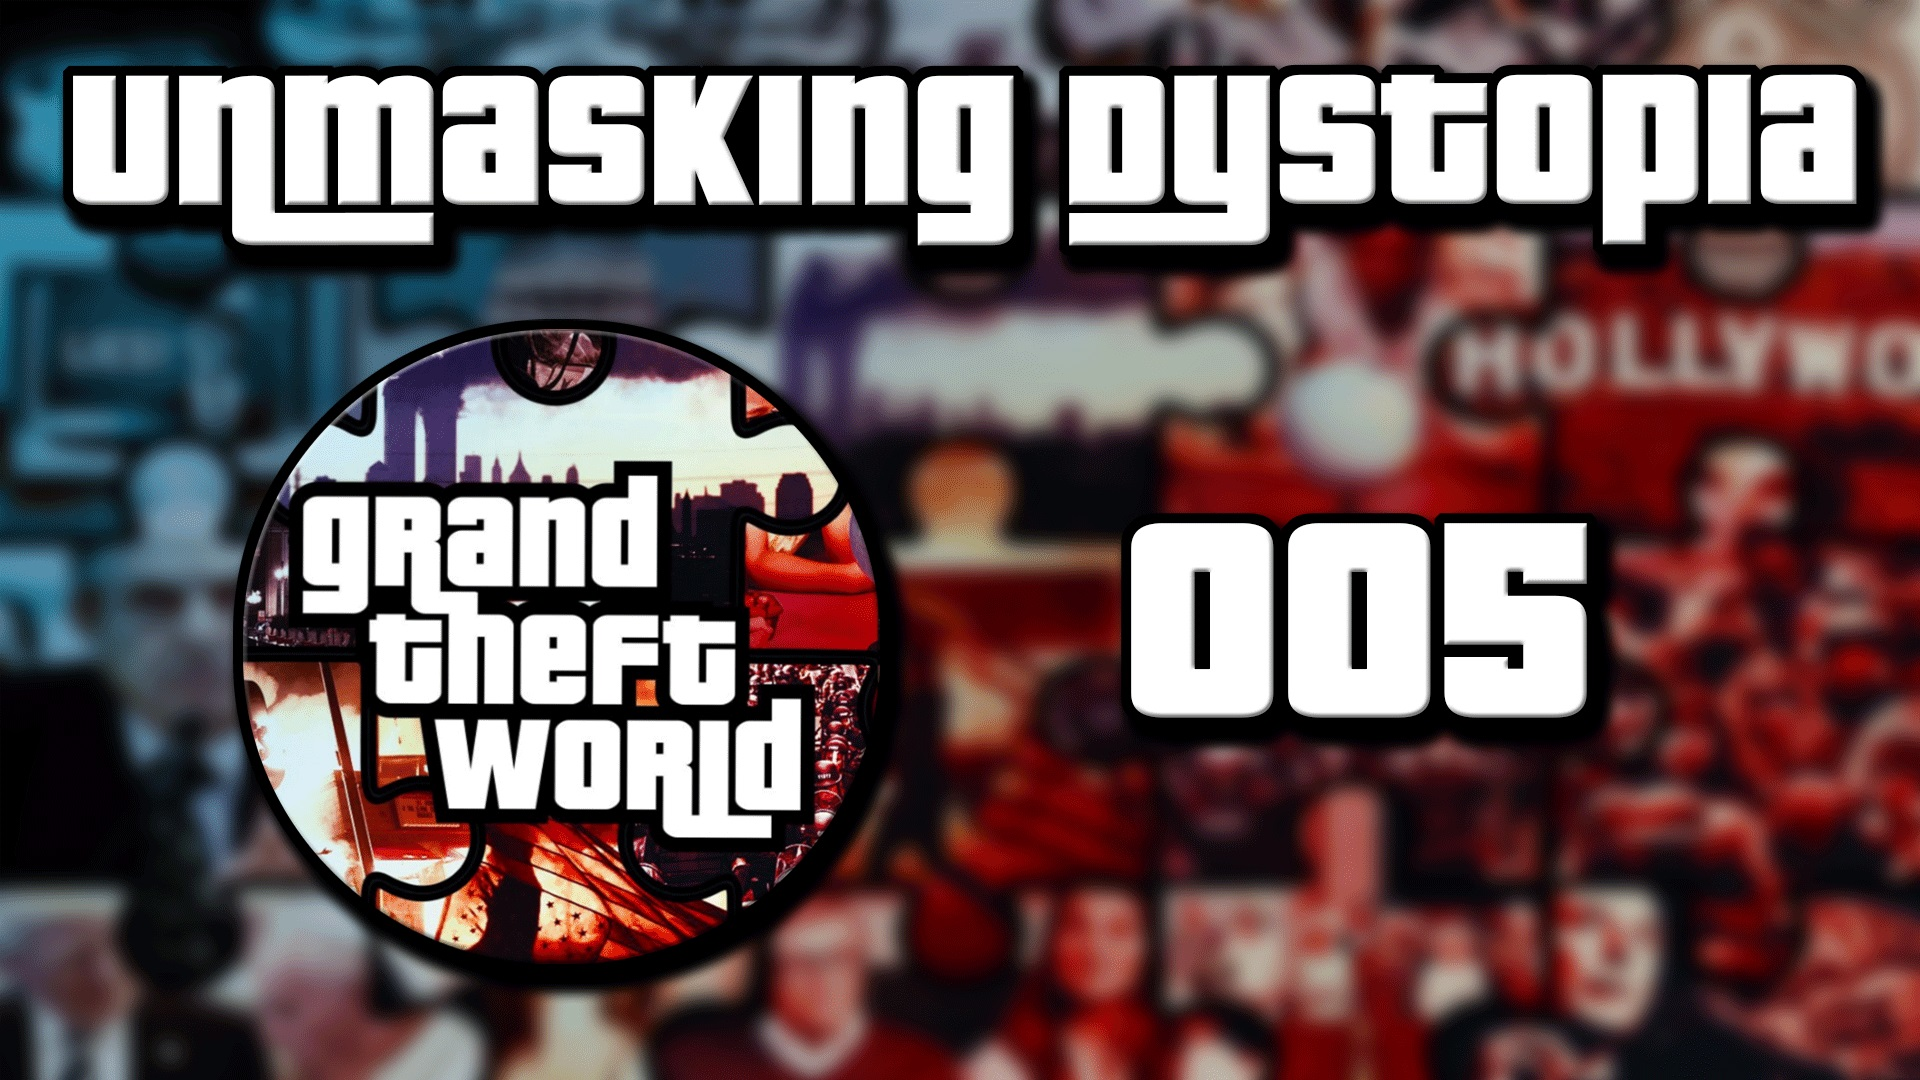 Grand Theft World Podcast 005 | Unmasking Dystopia